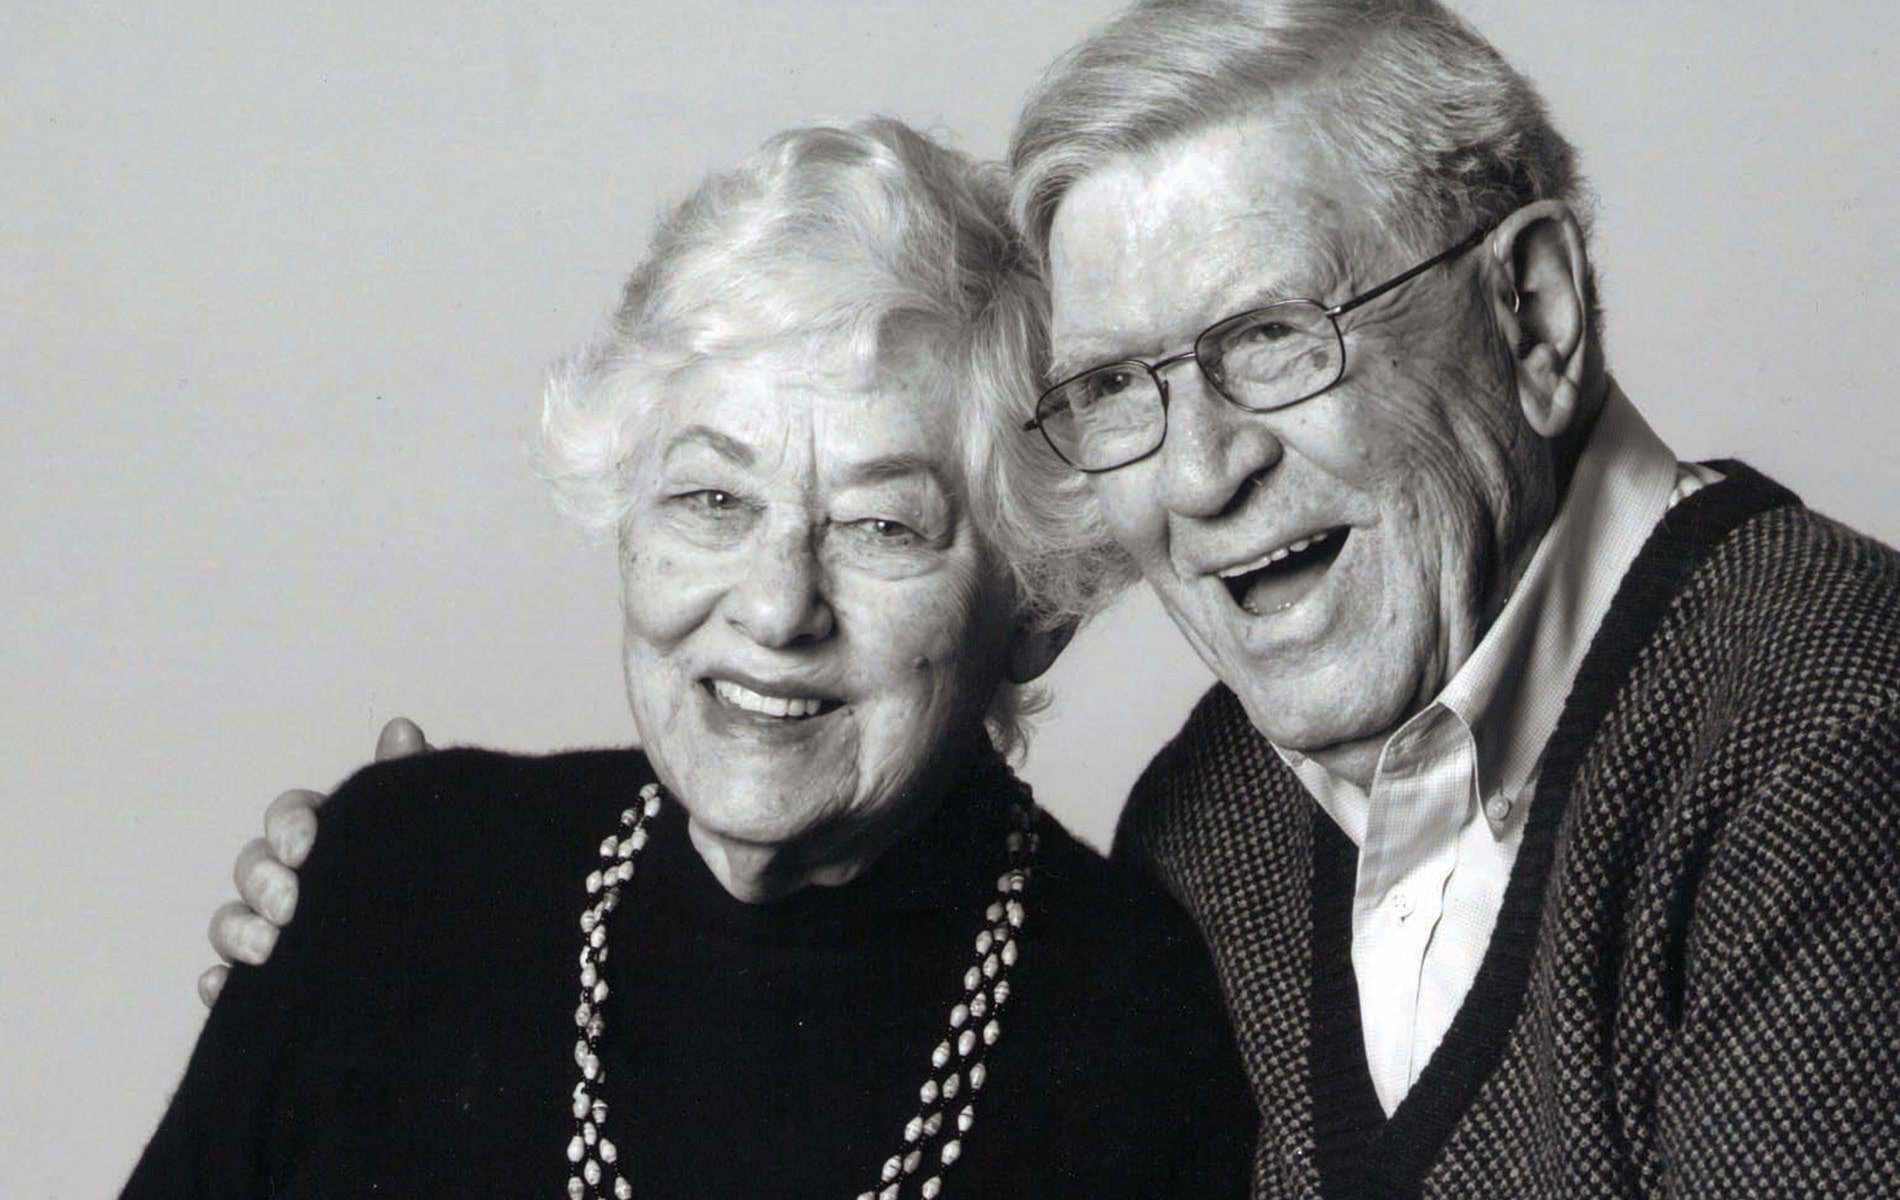 A portrait of Hanne and Max Leibmann